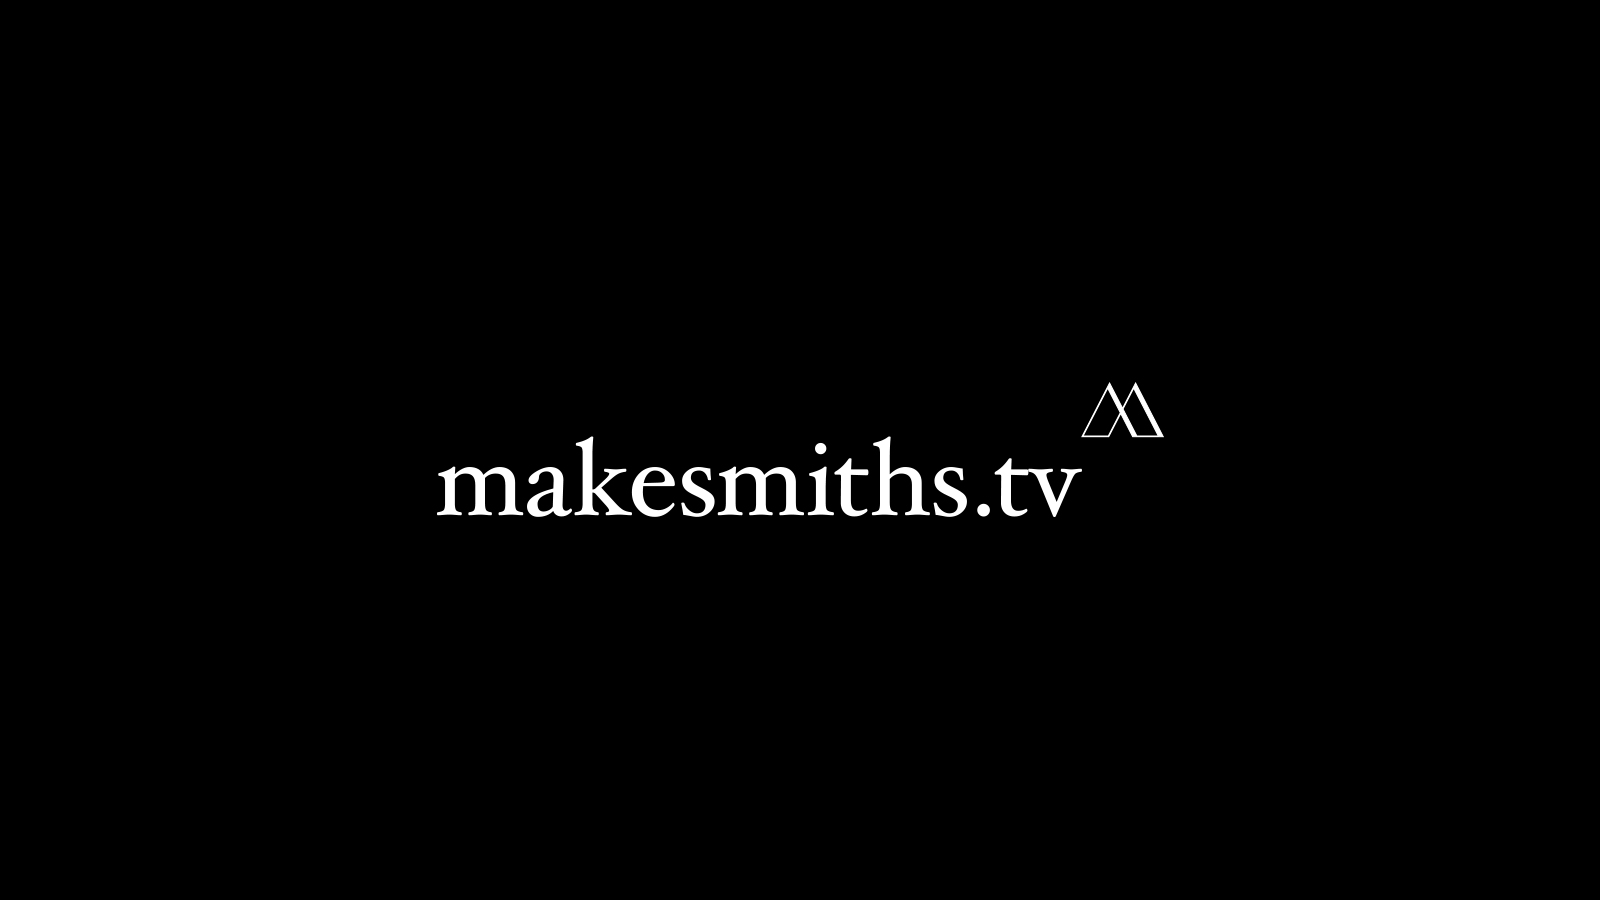 makesmiths-by-also-agency-3.jpg